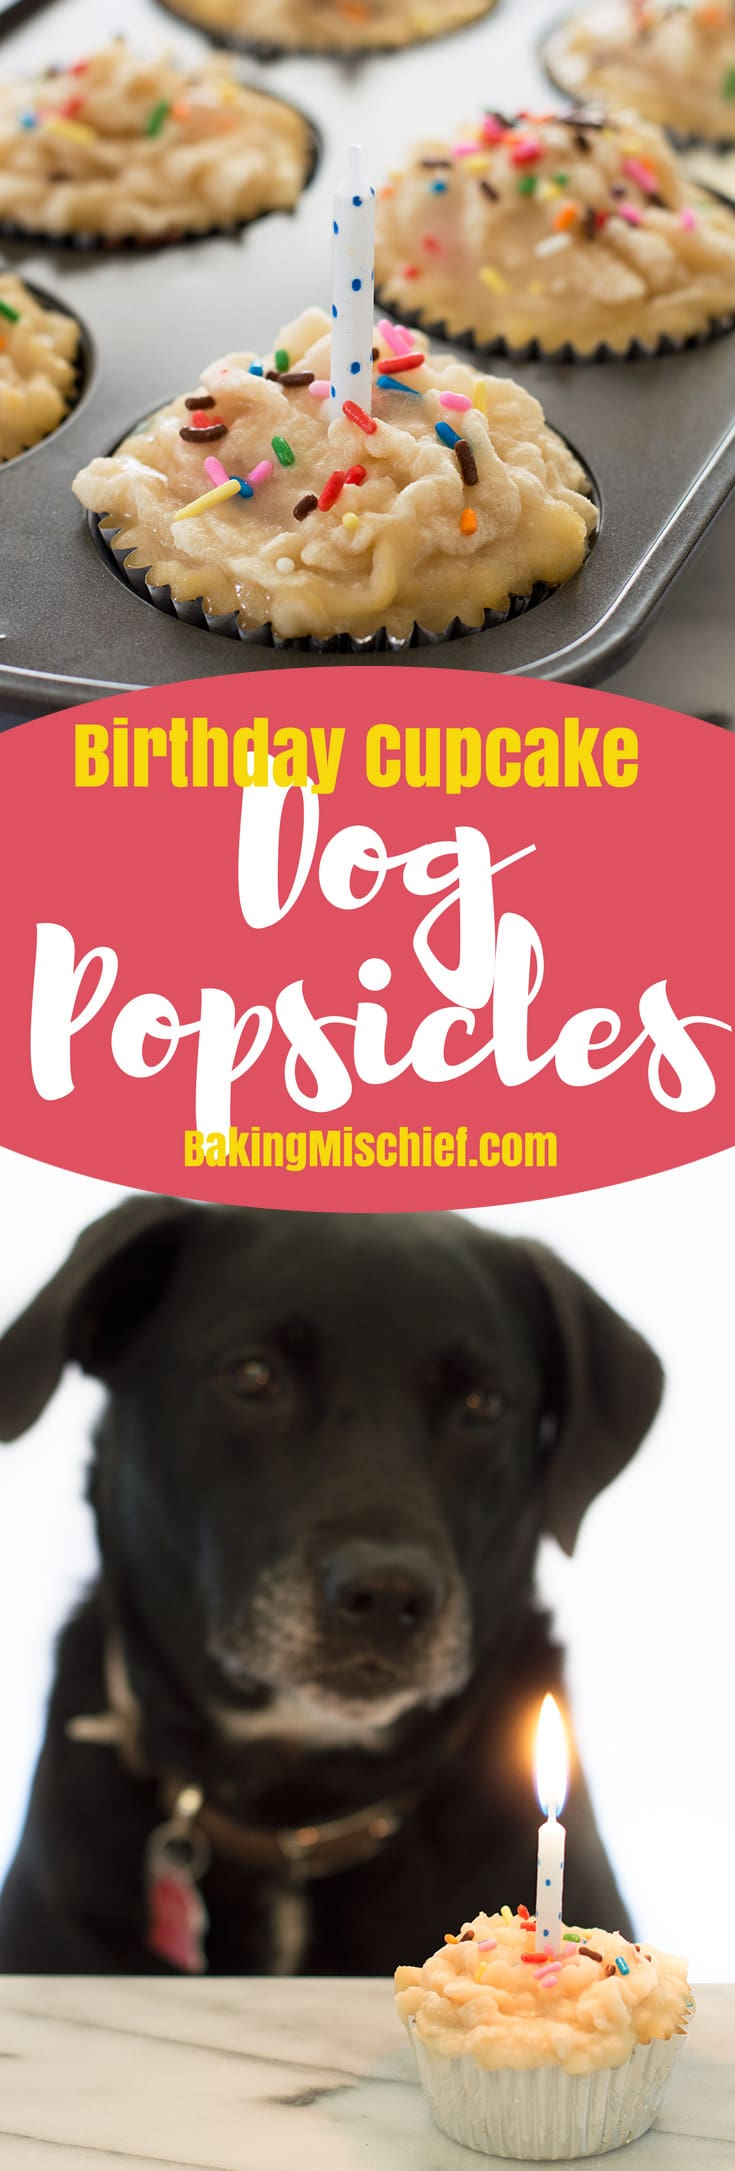 Cupcake-shaped dog popsicles made with chicken broth and a pureed tuna frosting. Simple to make and your dog is going to LOVE them! From BakingMischief.com